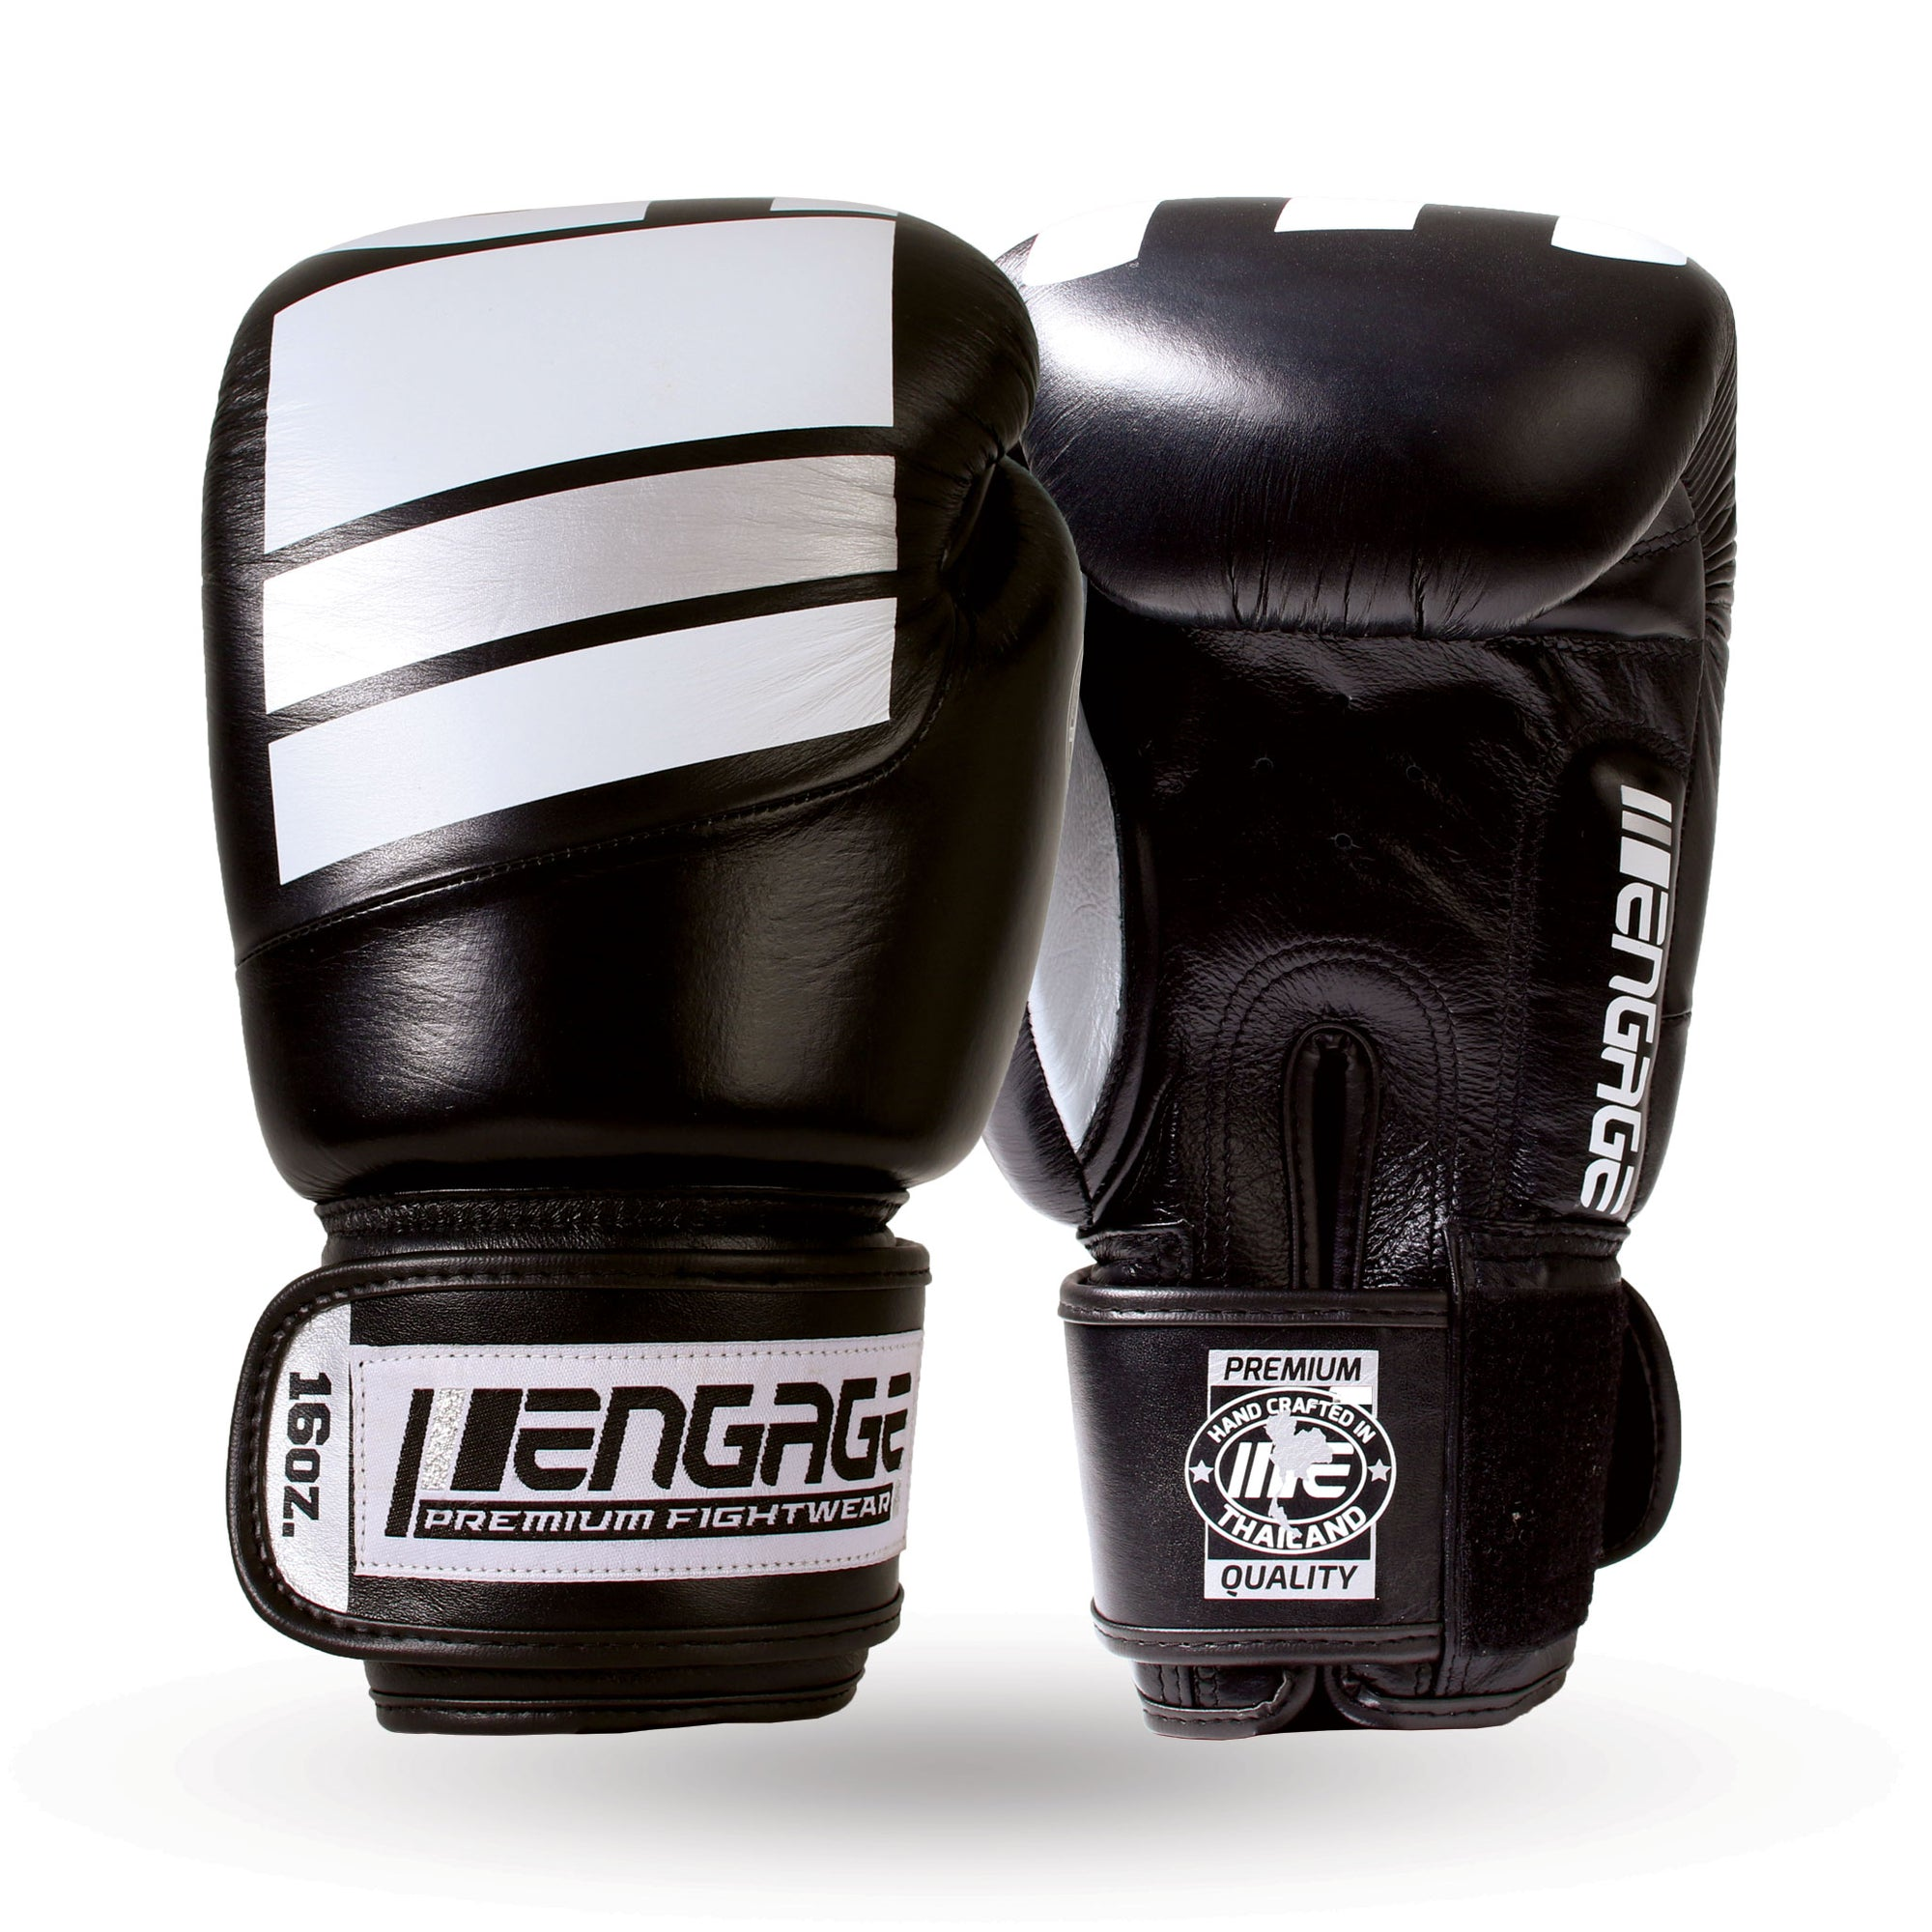 Z - Engage Knights Boxing Gloves